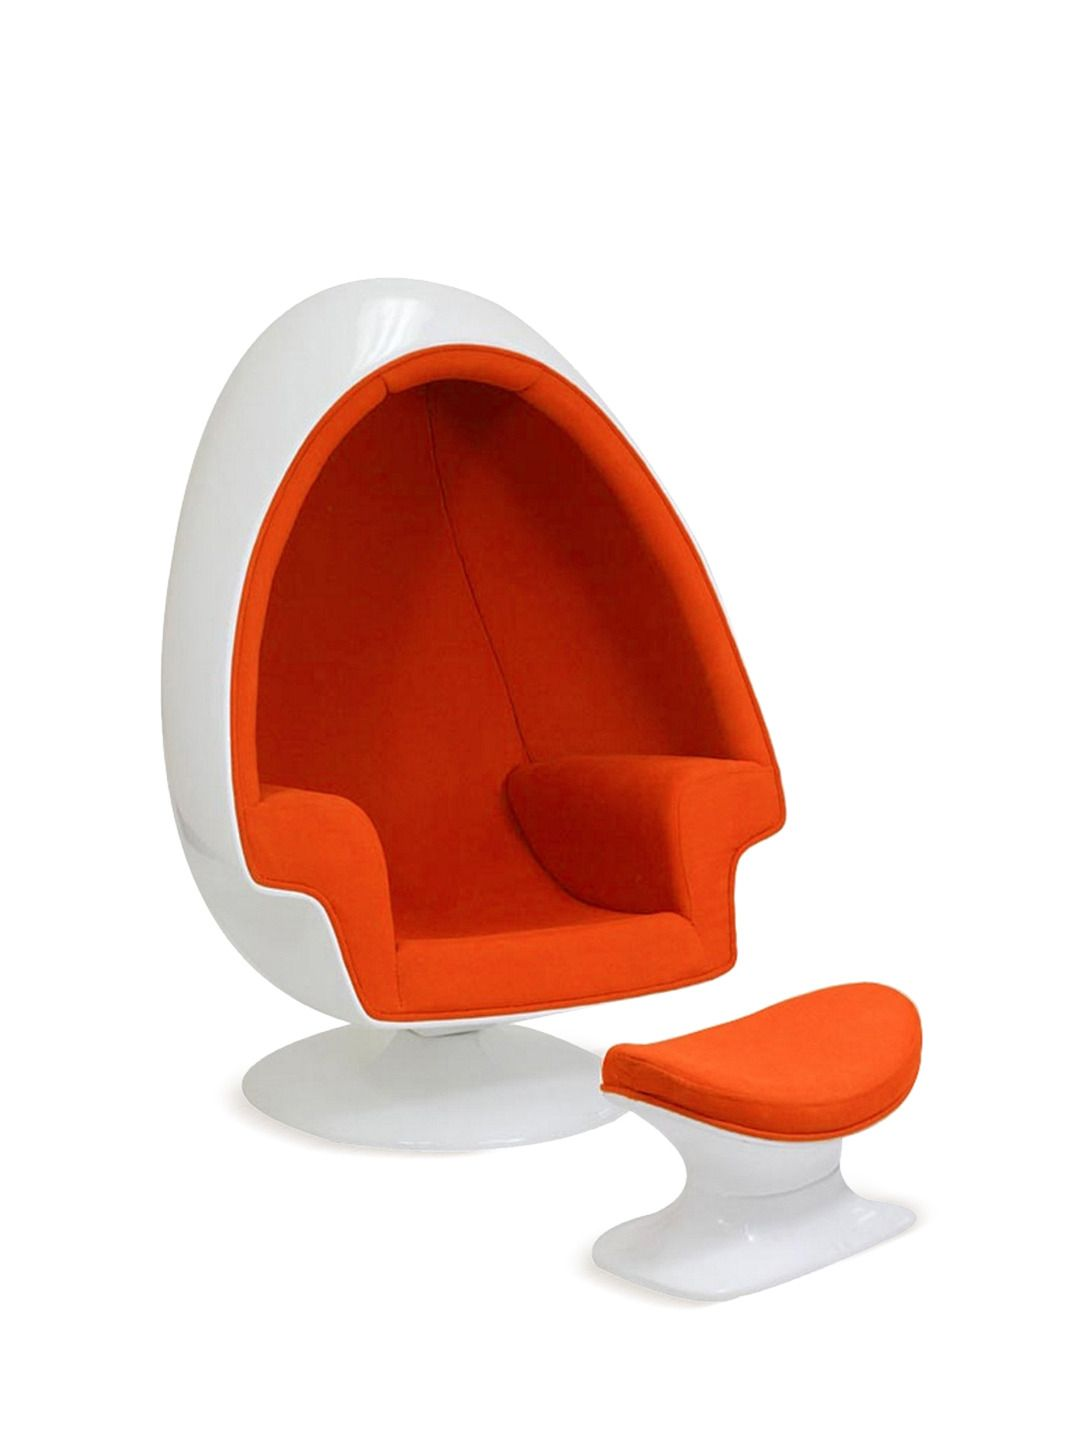 alpha shell egg chair and ottoman by pearl river modern  mid  - alpha shell egg chair and ottoman by pearl river modern